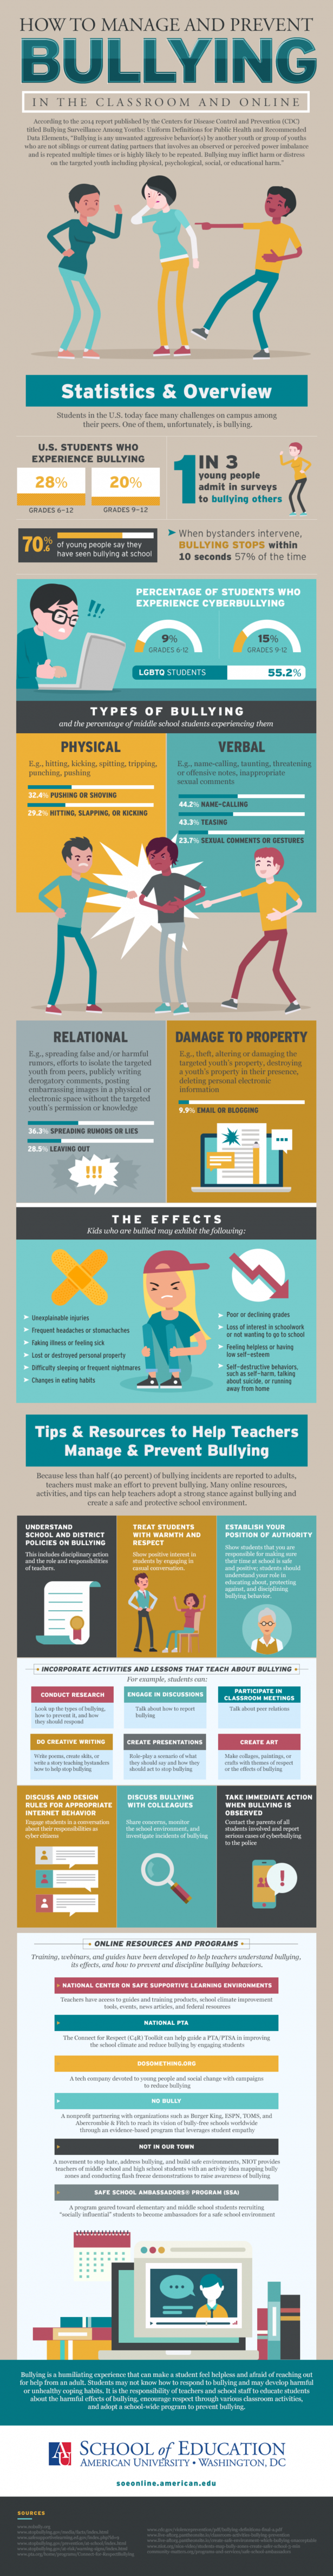 how to manage and prevent bullying in the classroom